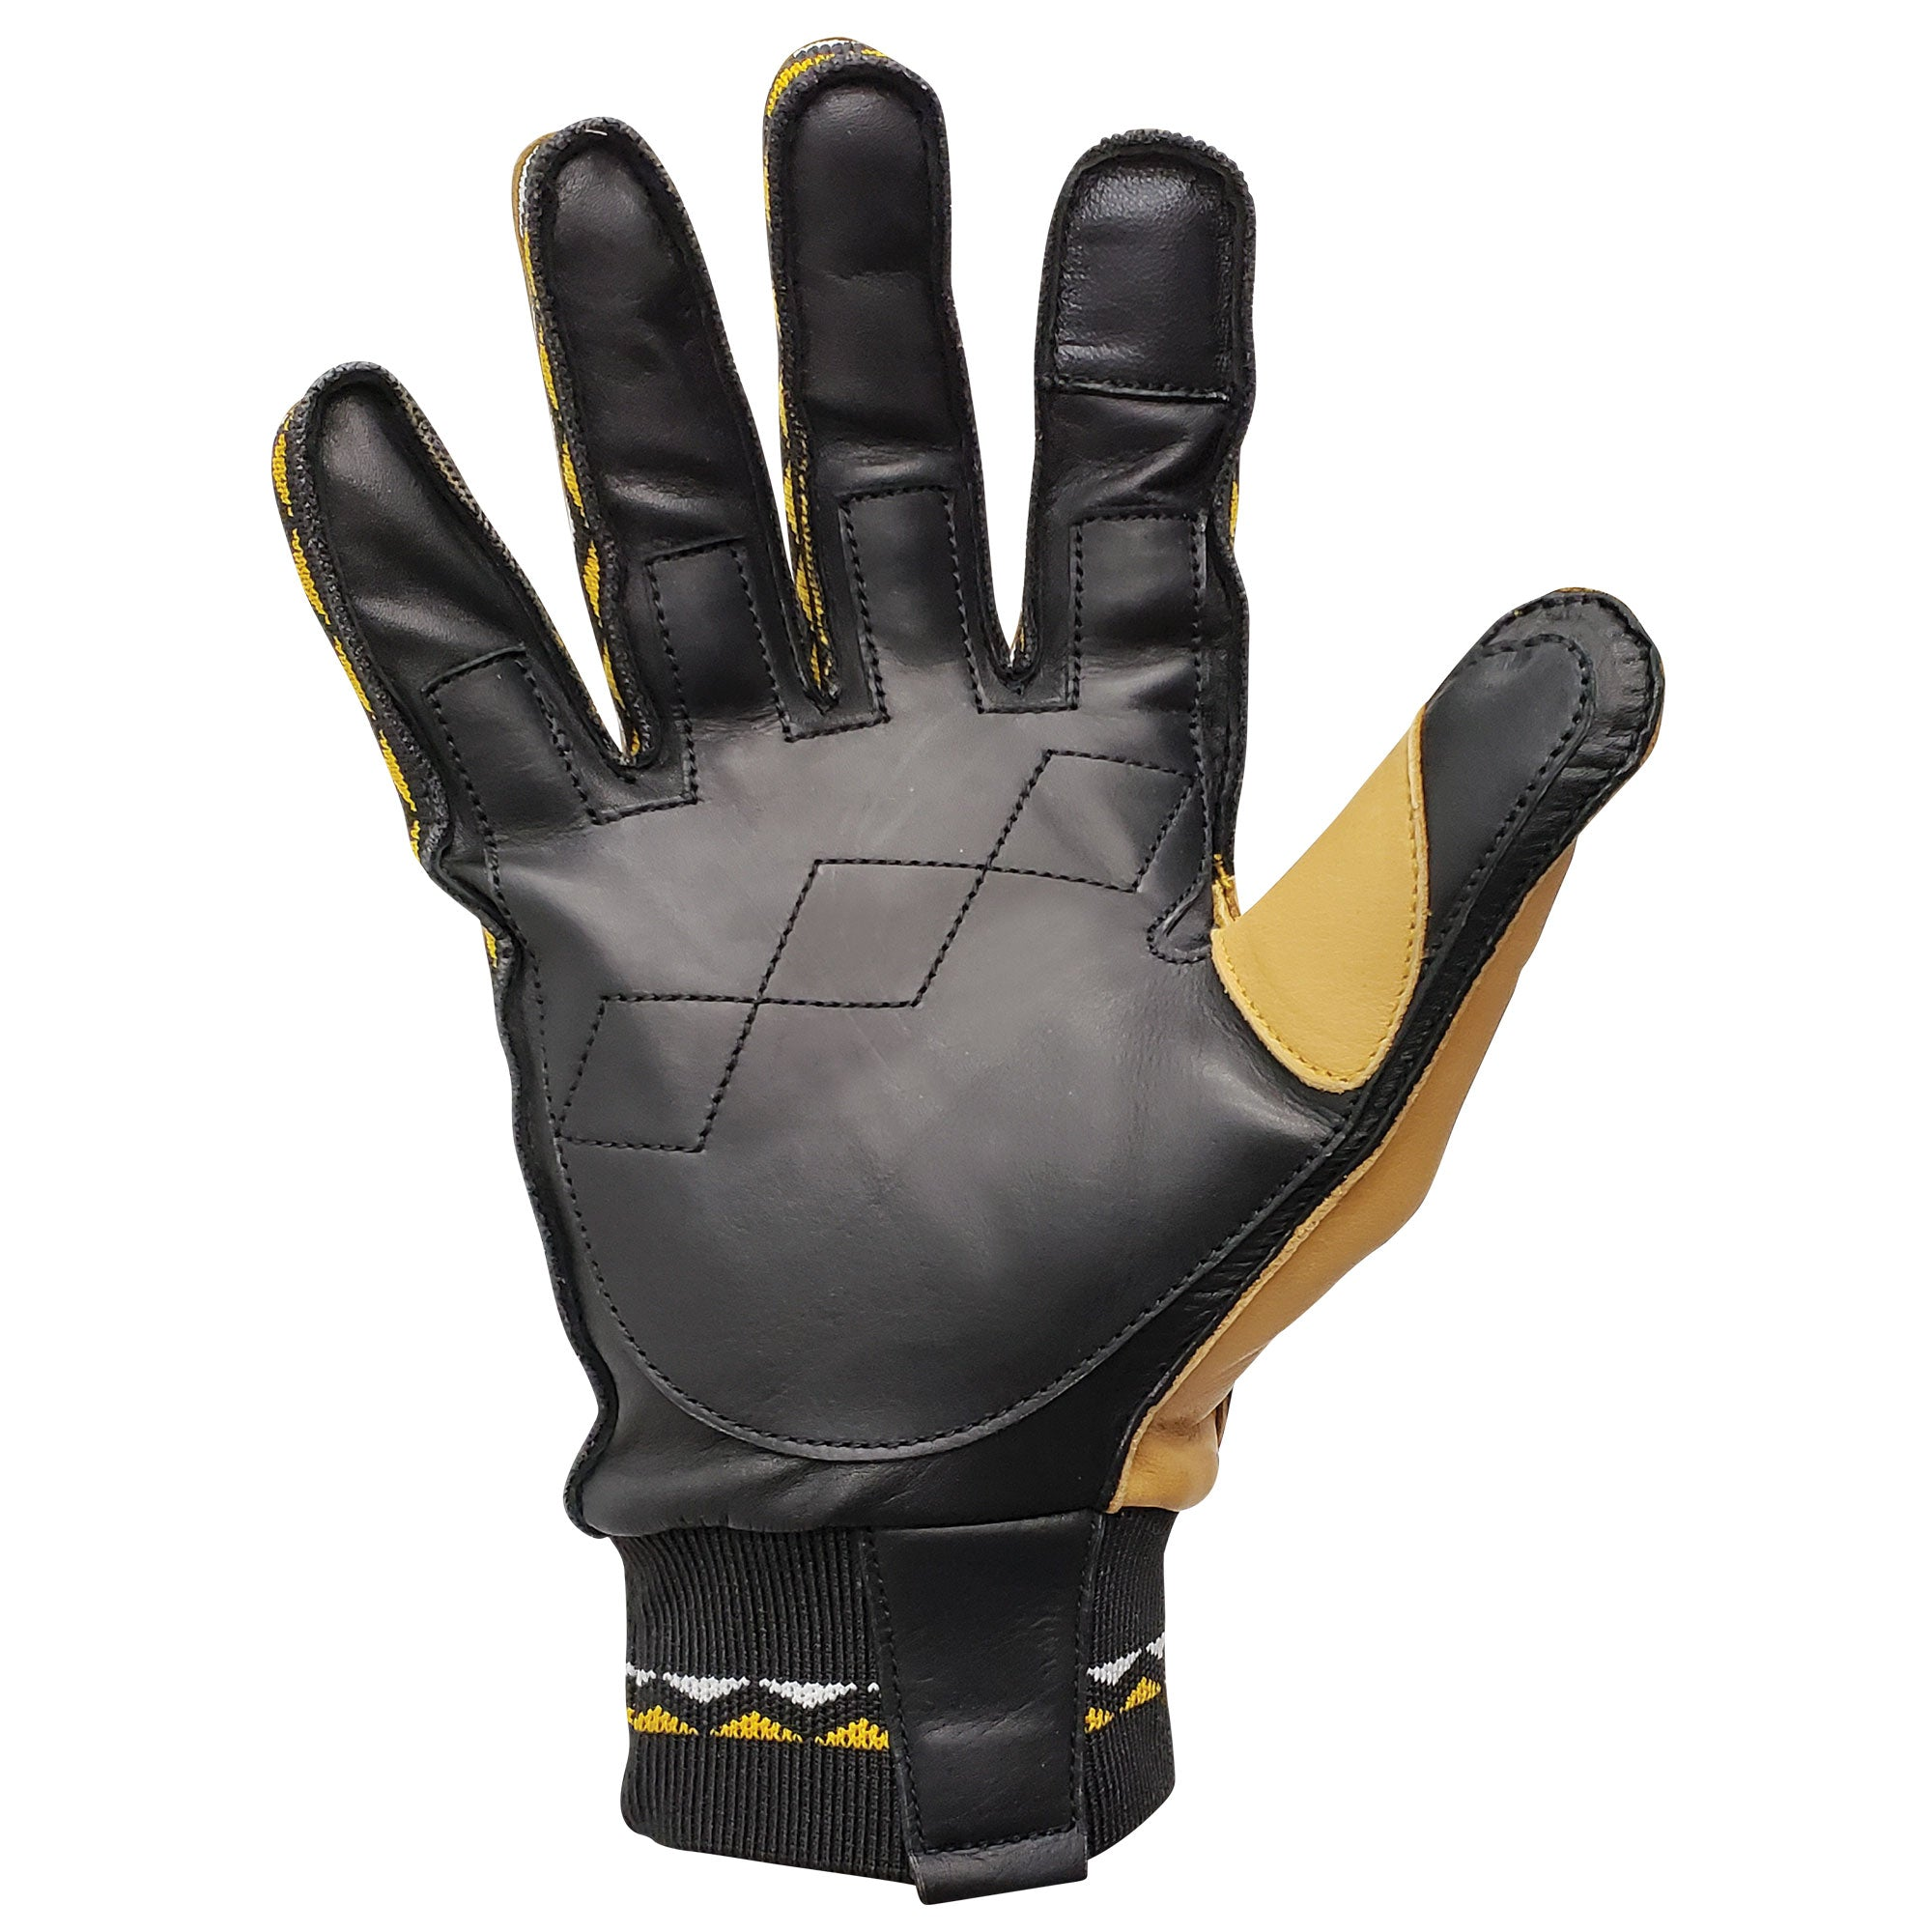 Tracker Glove - Tan